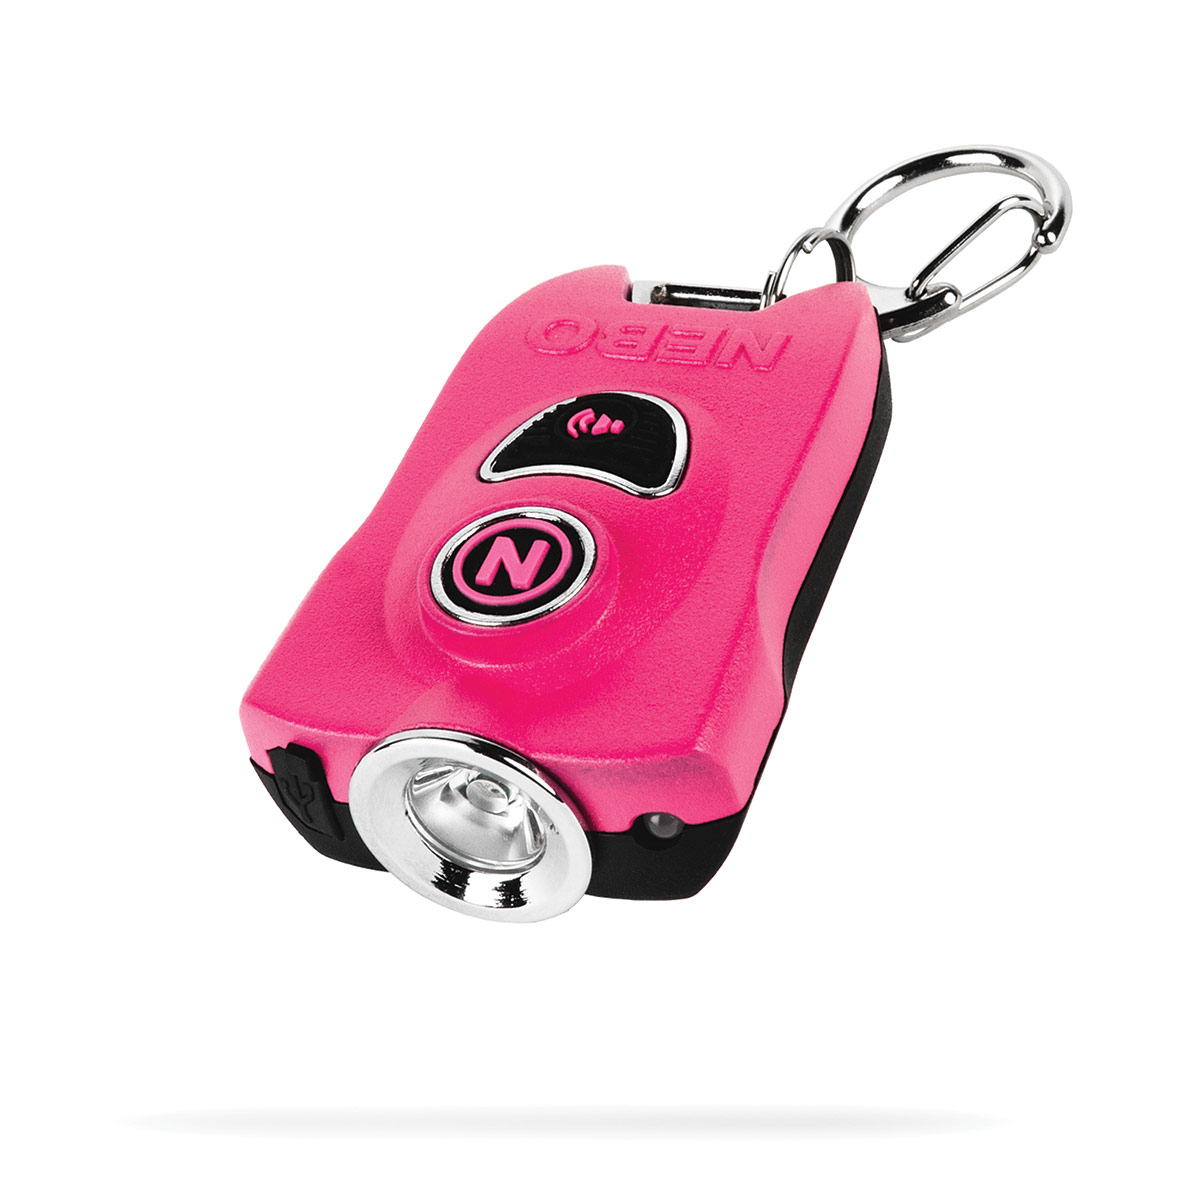 MYPAL The Personal Safety Alarm and Light - Pink